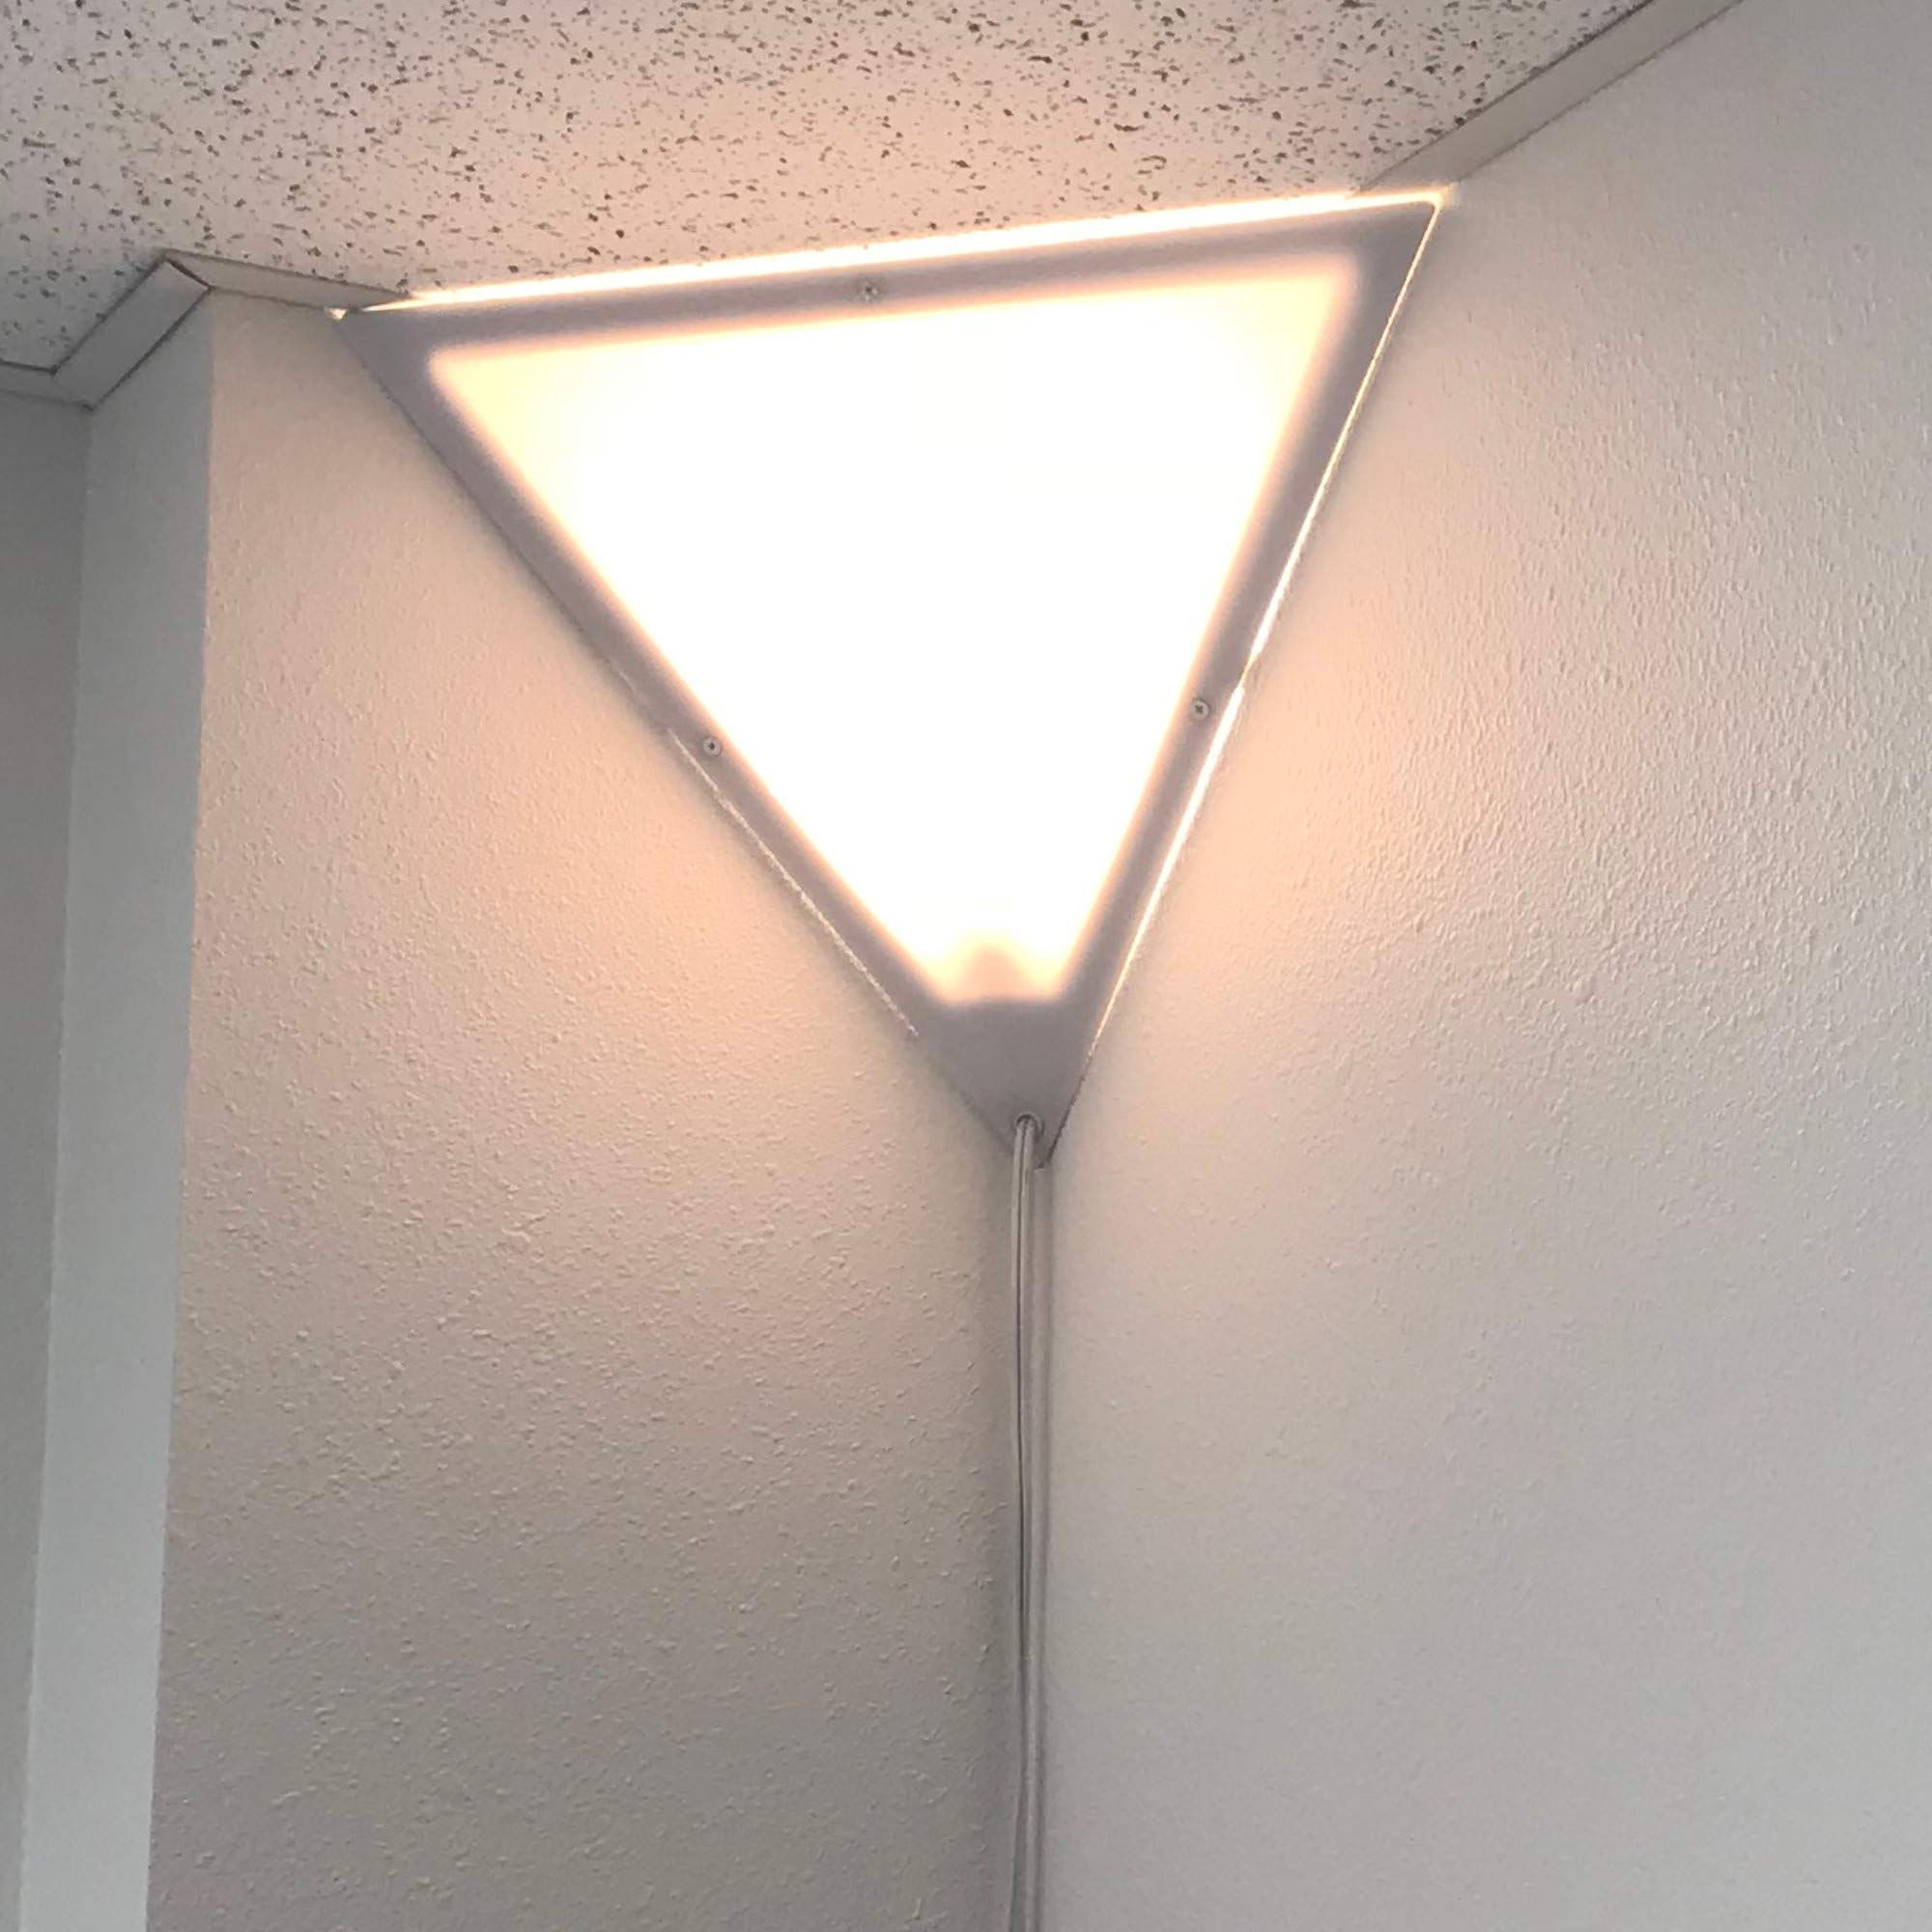 Beacon 16'' Triangle Corner Ceiling Light, Plug-In 17' White Cord, by Home Concept, Installs in Seconds - Perfect for Apartments, dorms - No Wiring Needed